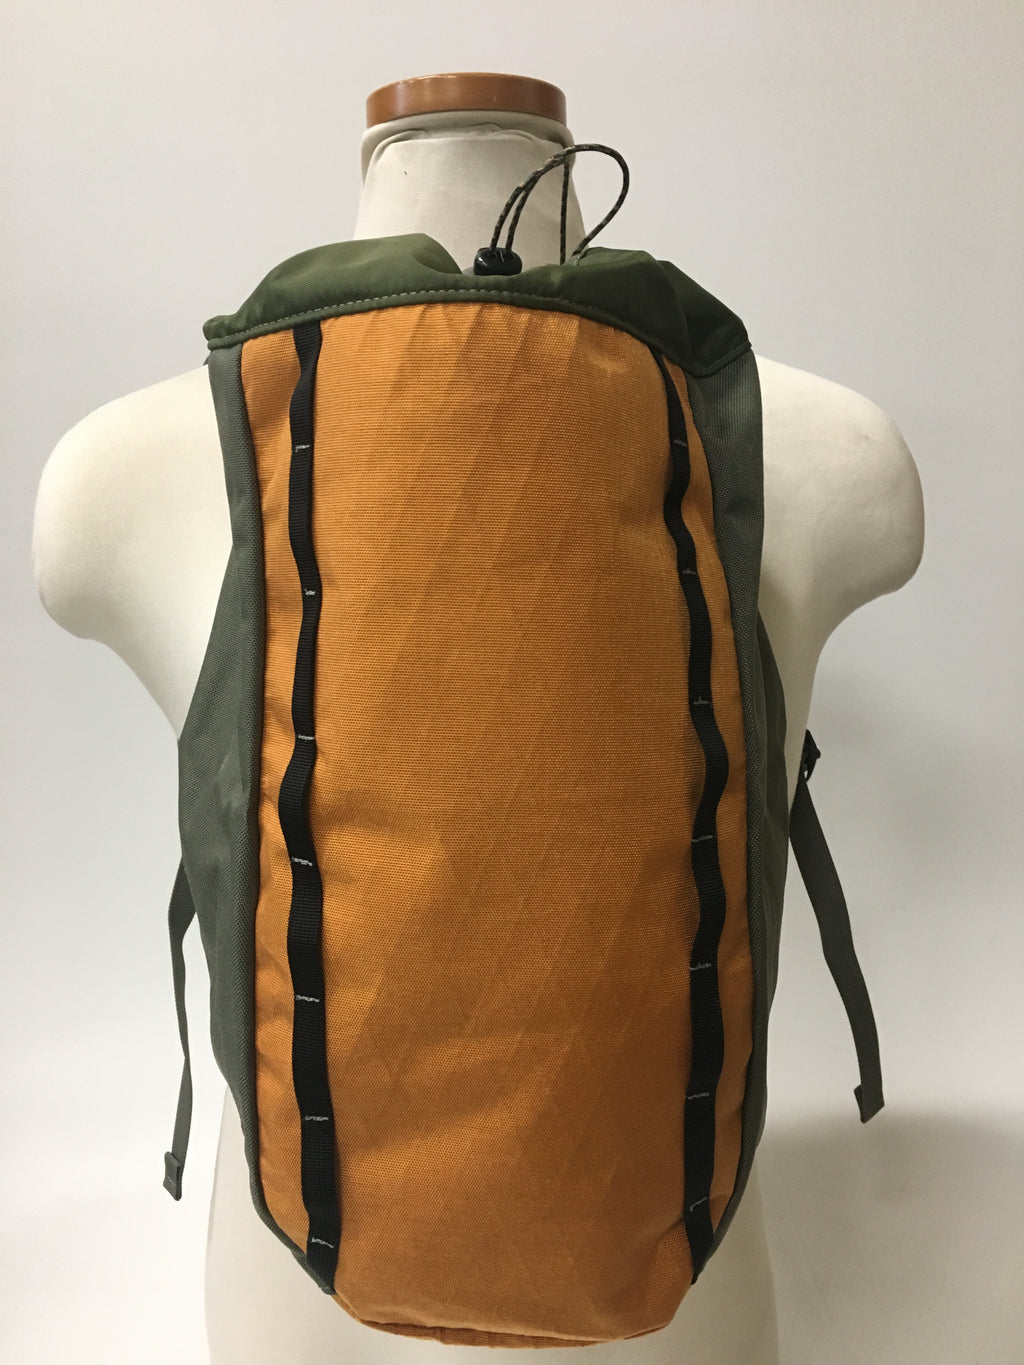 LUSB171 Ultralight Day Pack